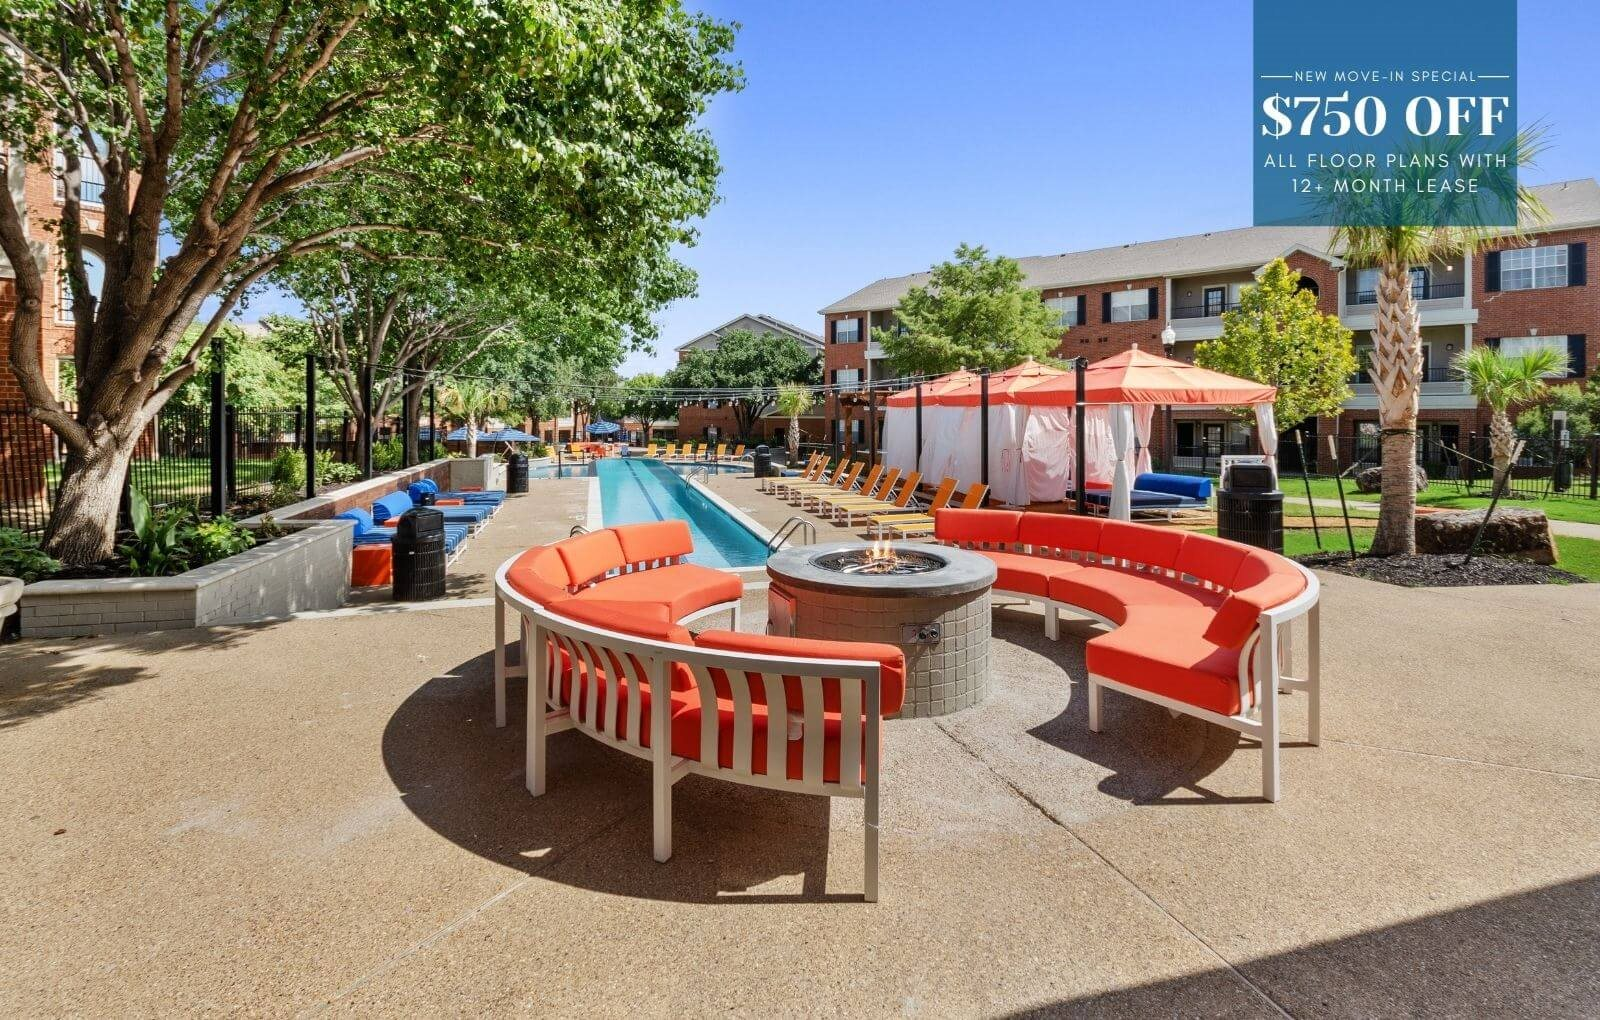 Firepit and lounge area at Chapel Hill apartments showcasing new move-in special of $750 off first month's rent.